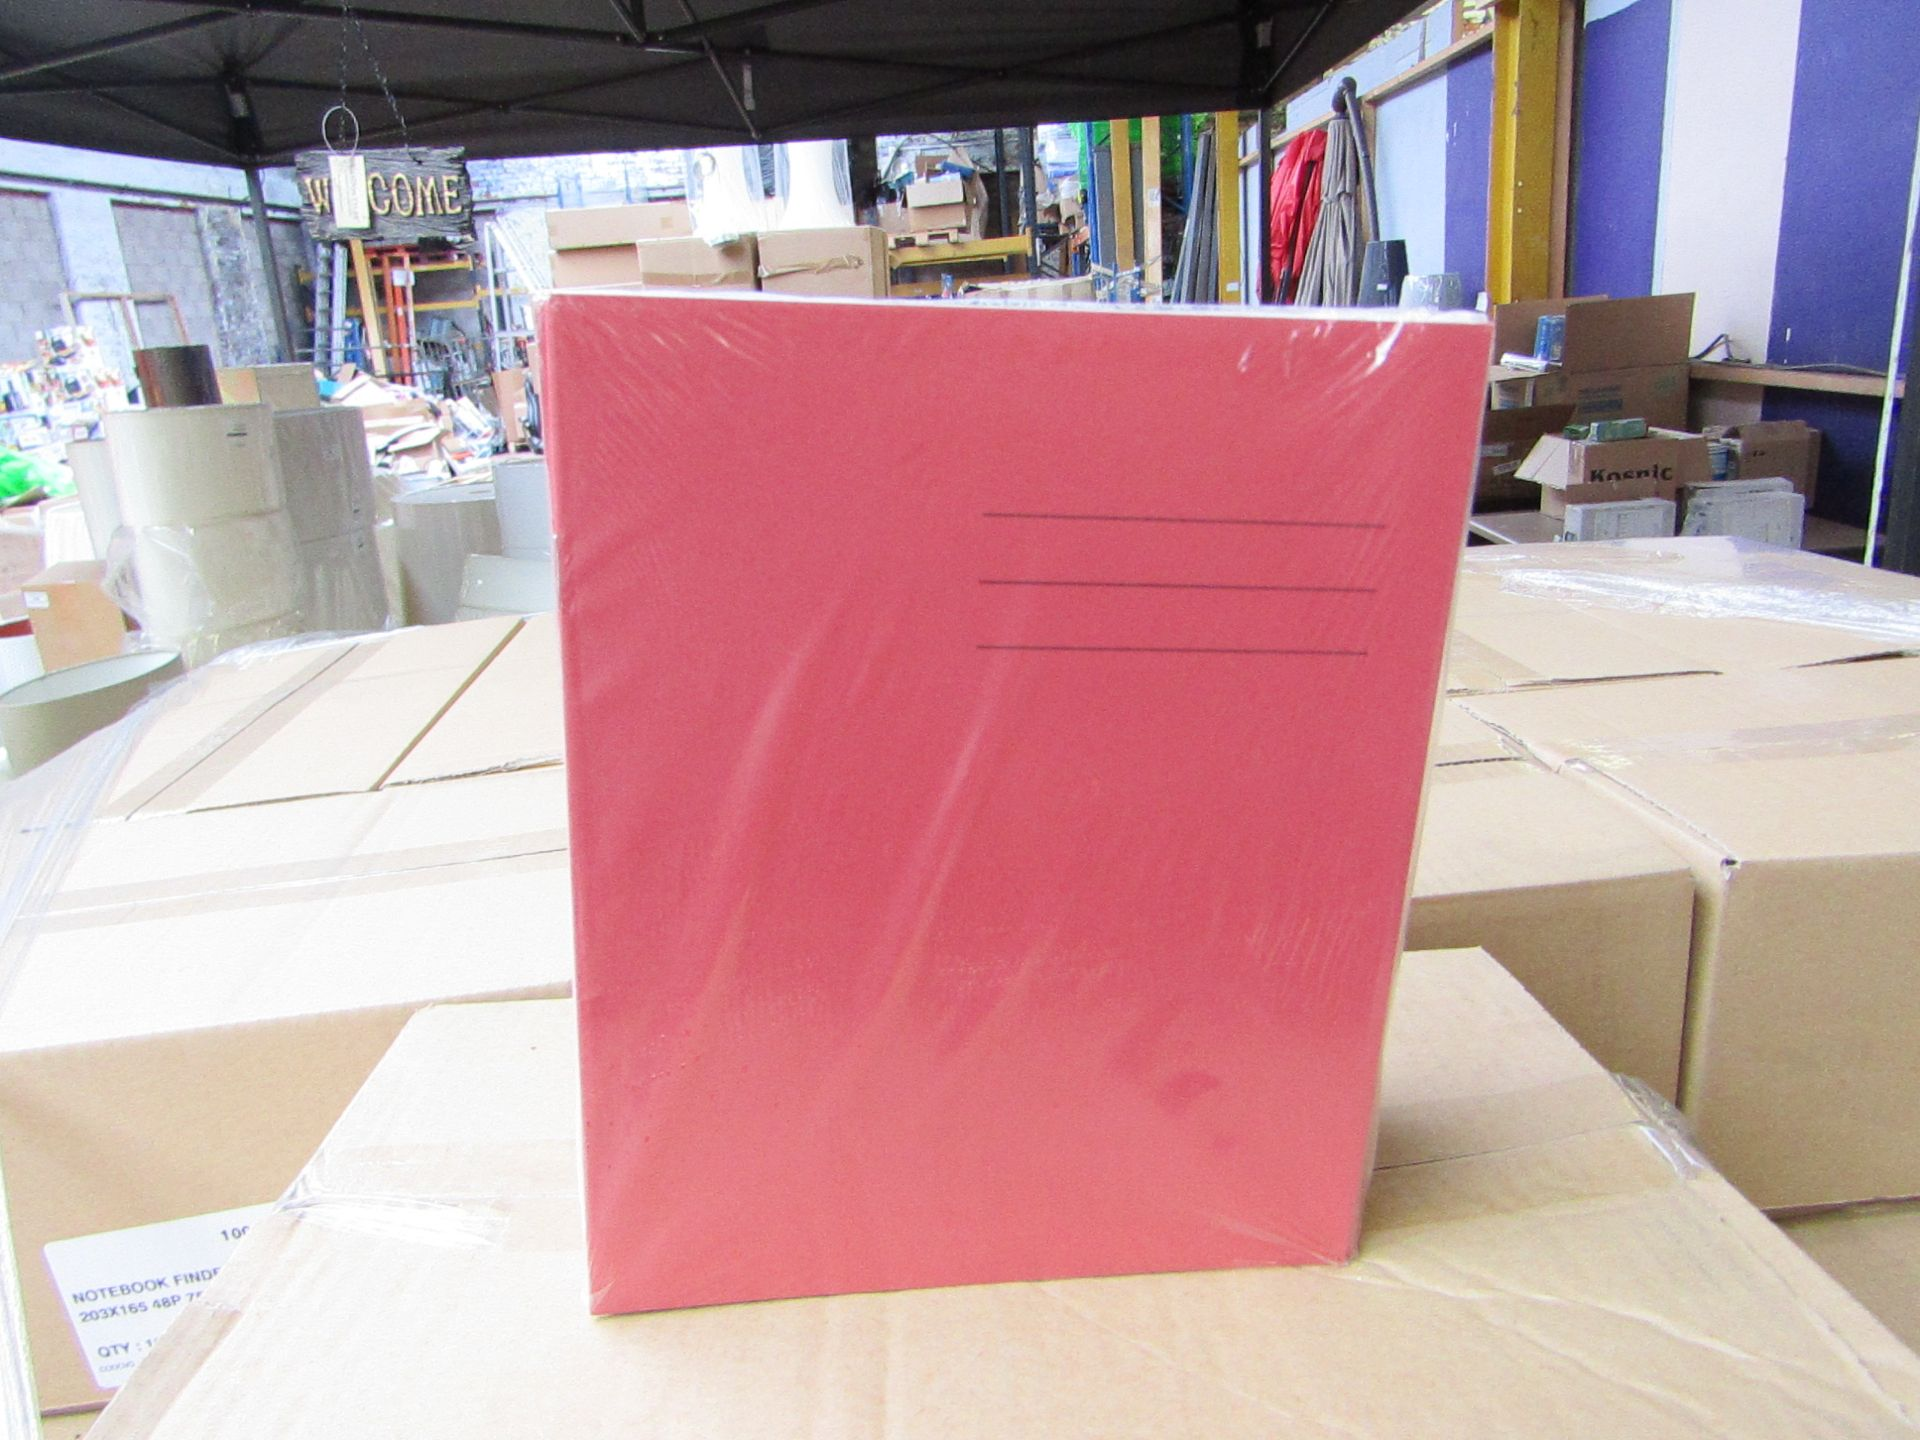 Lot 18 - Box of approx 100 Exercise books, please note these are picked from a mixed pallet and colours may